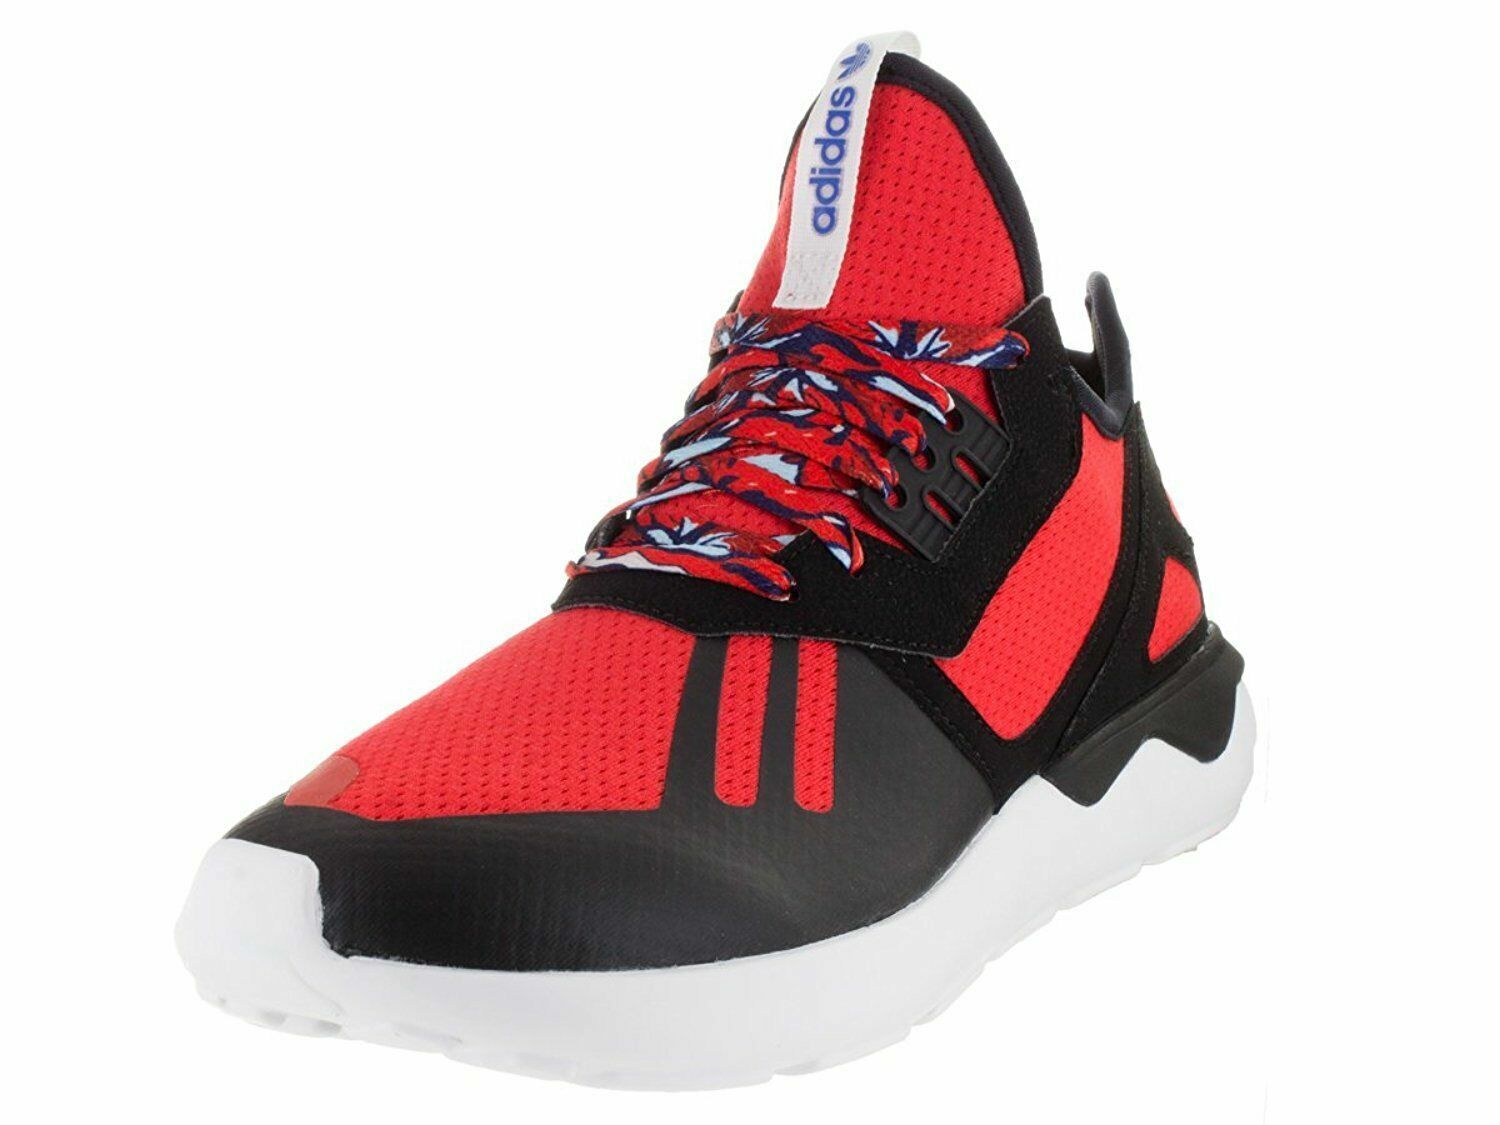 100% authentic 5dc43 bb045 Originals Runner Tubular Mens Adidas Running Red 12 Size ...